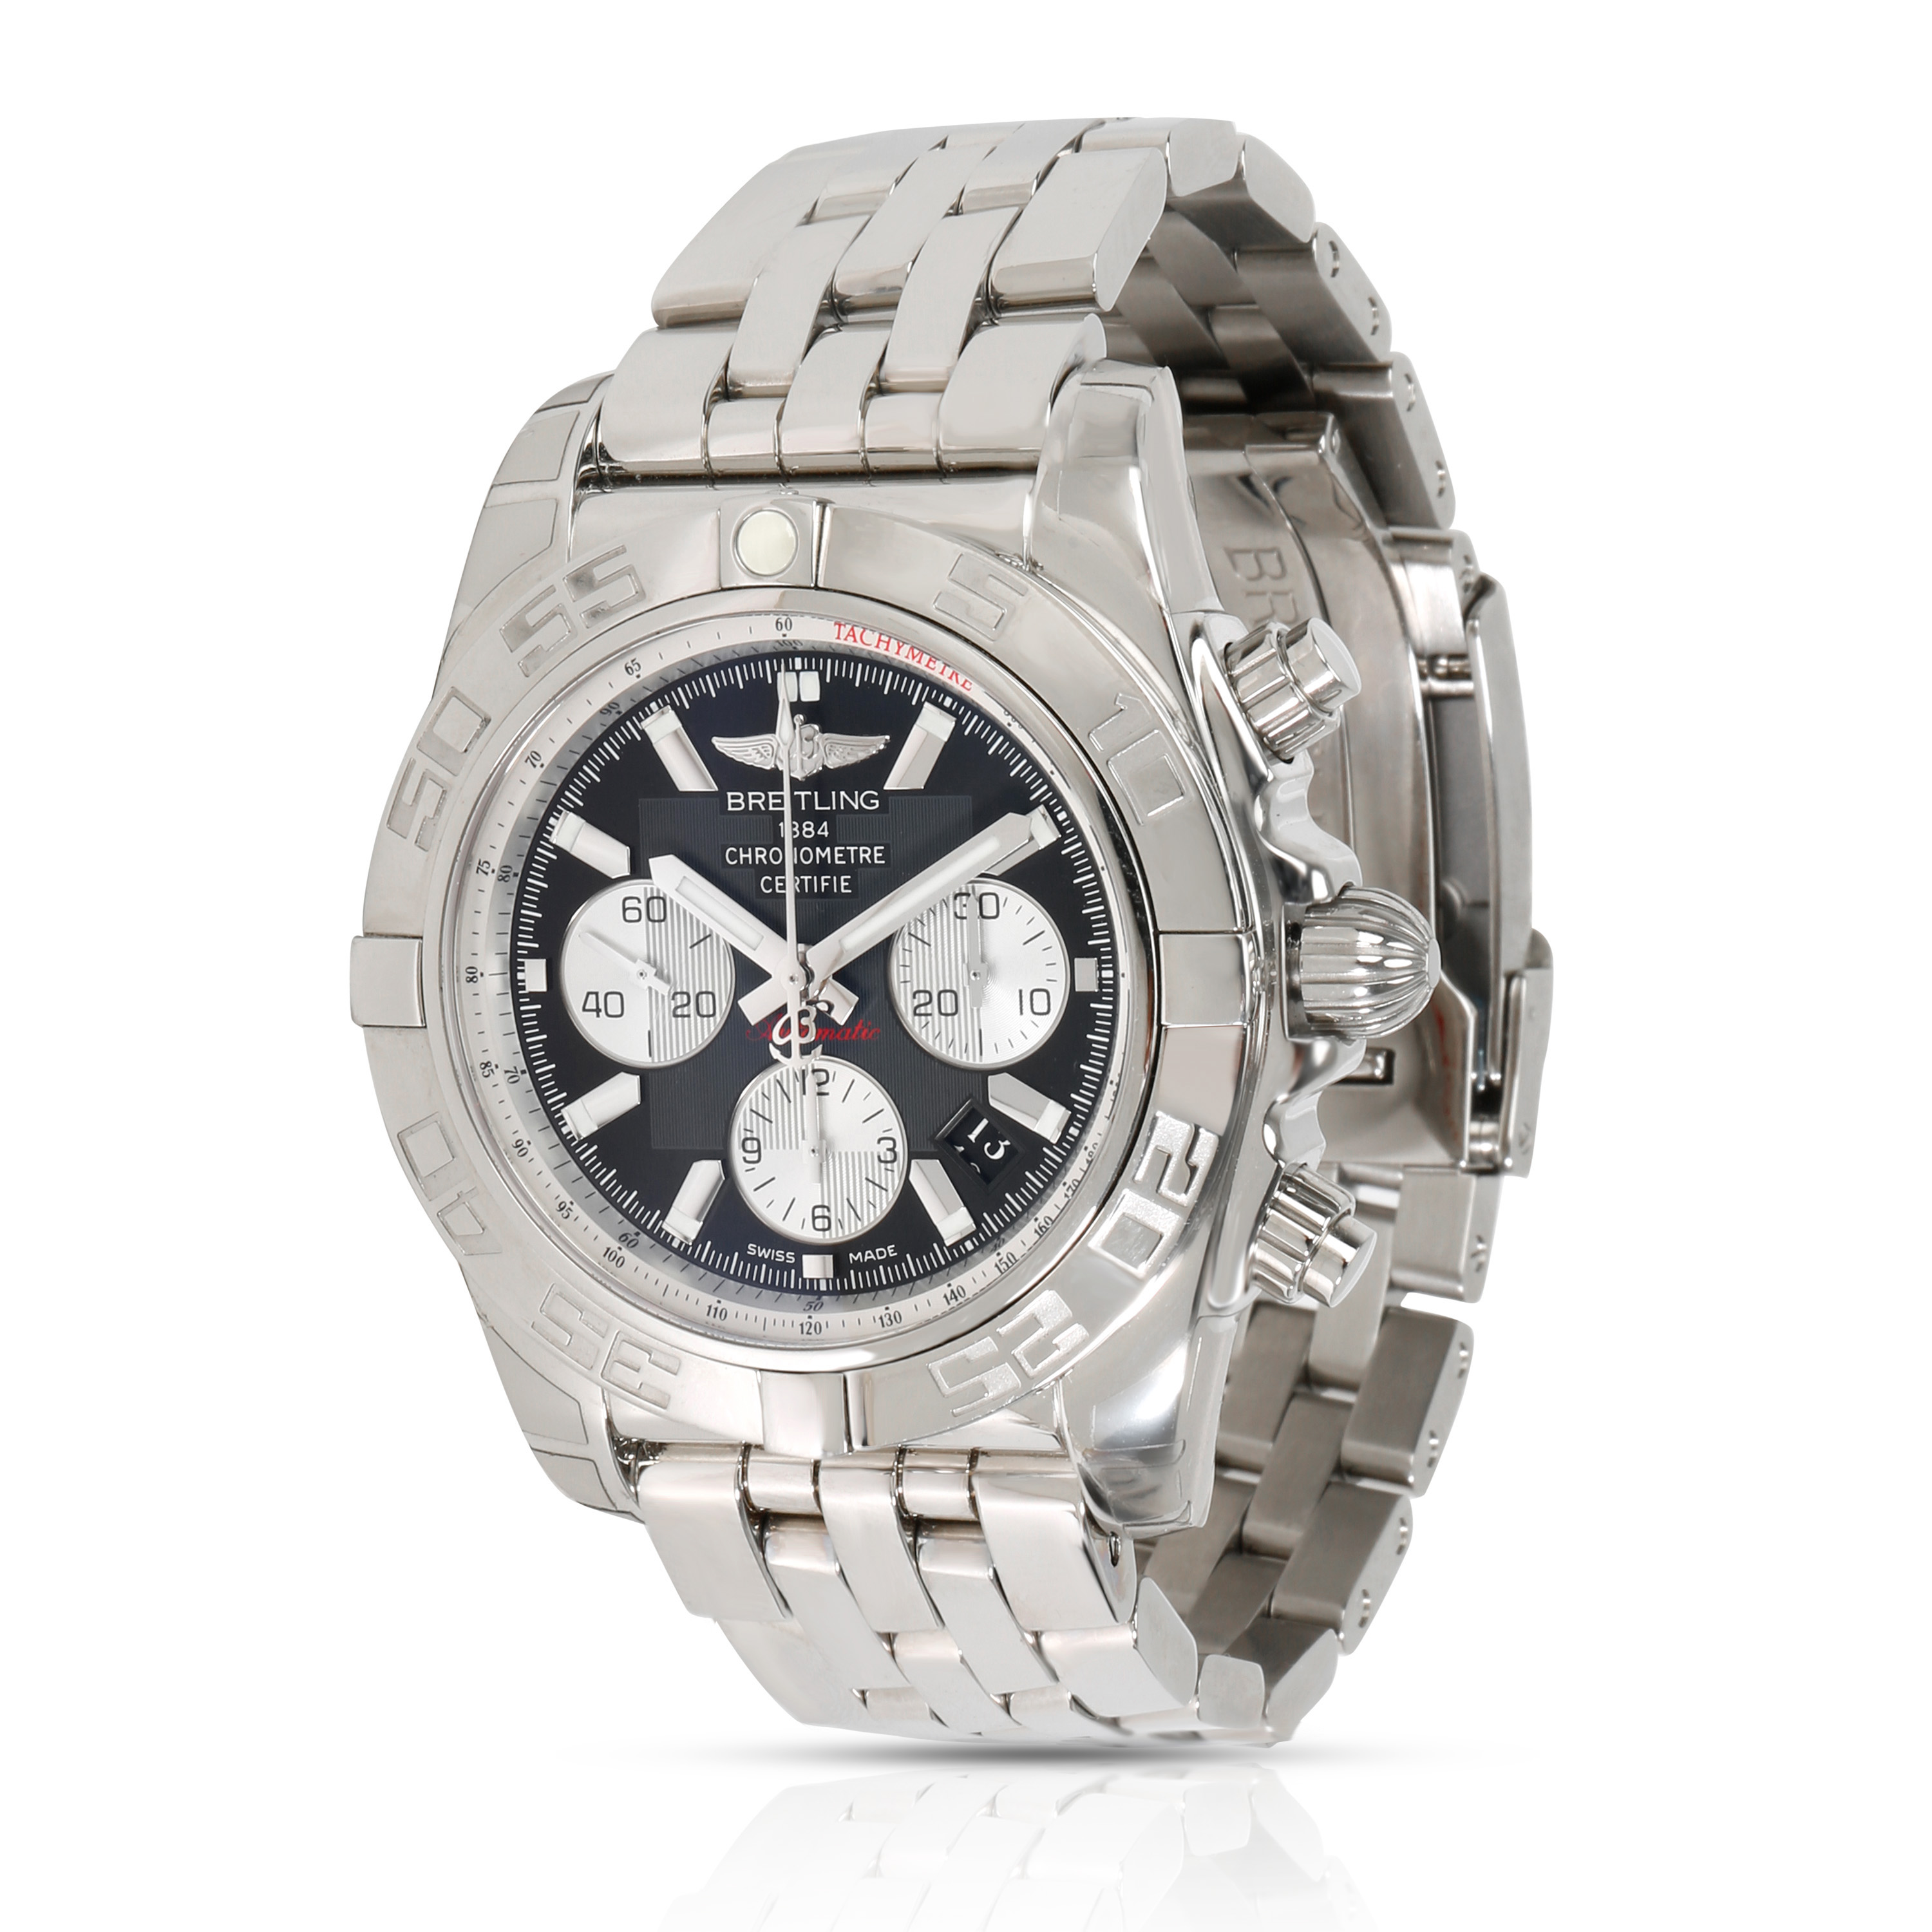 on sale 4d690 d9015 Details about Unworn Breitling Chronomat 44 AB011012/B967 Men's Watch in  Stainless Steel